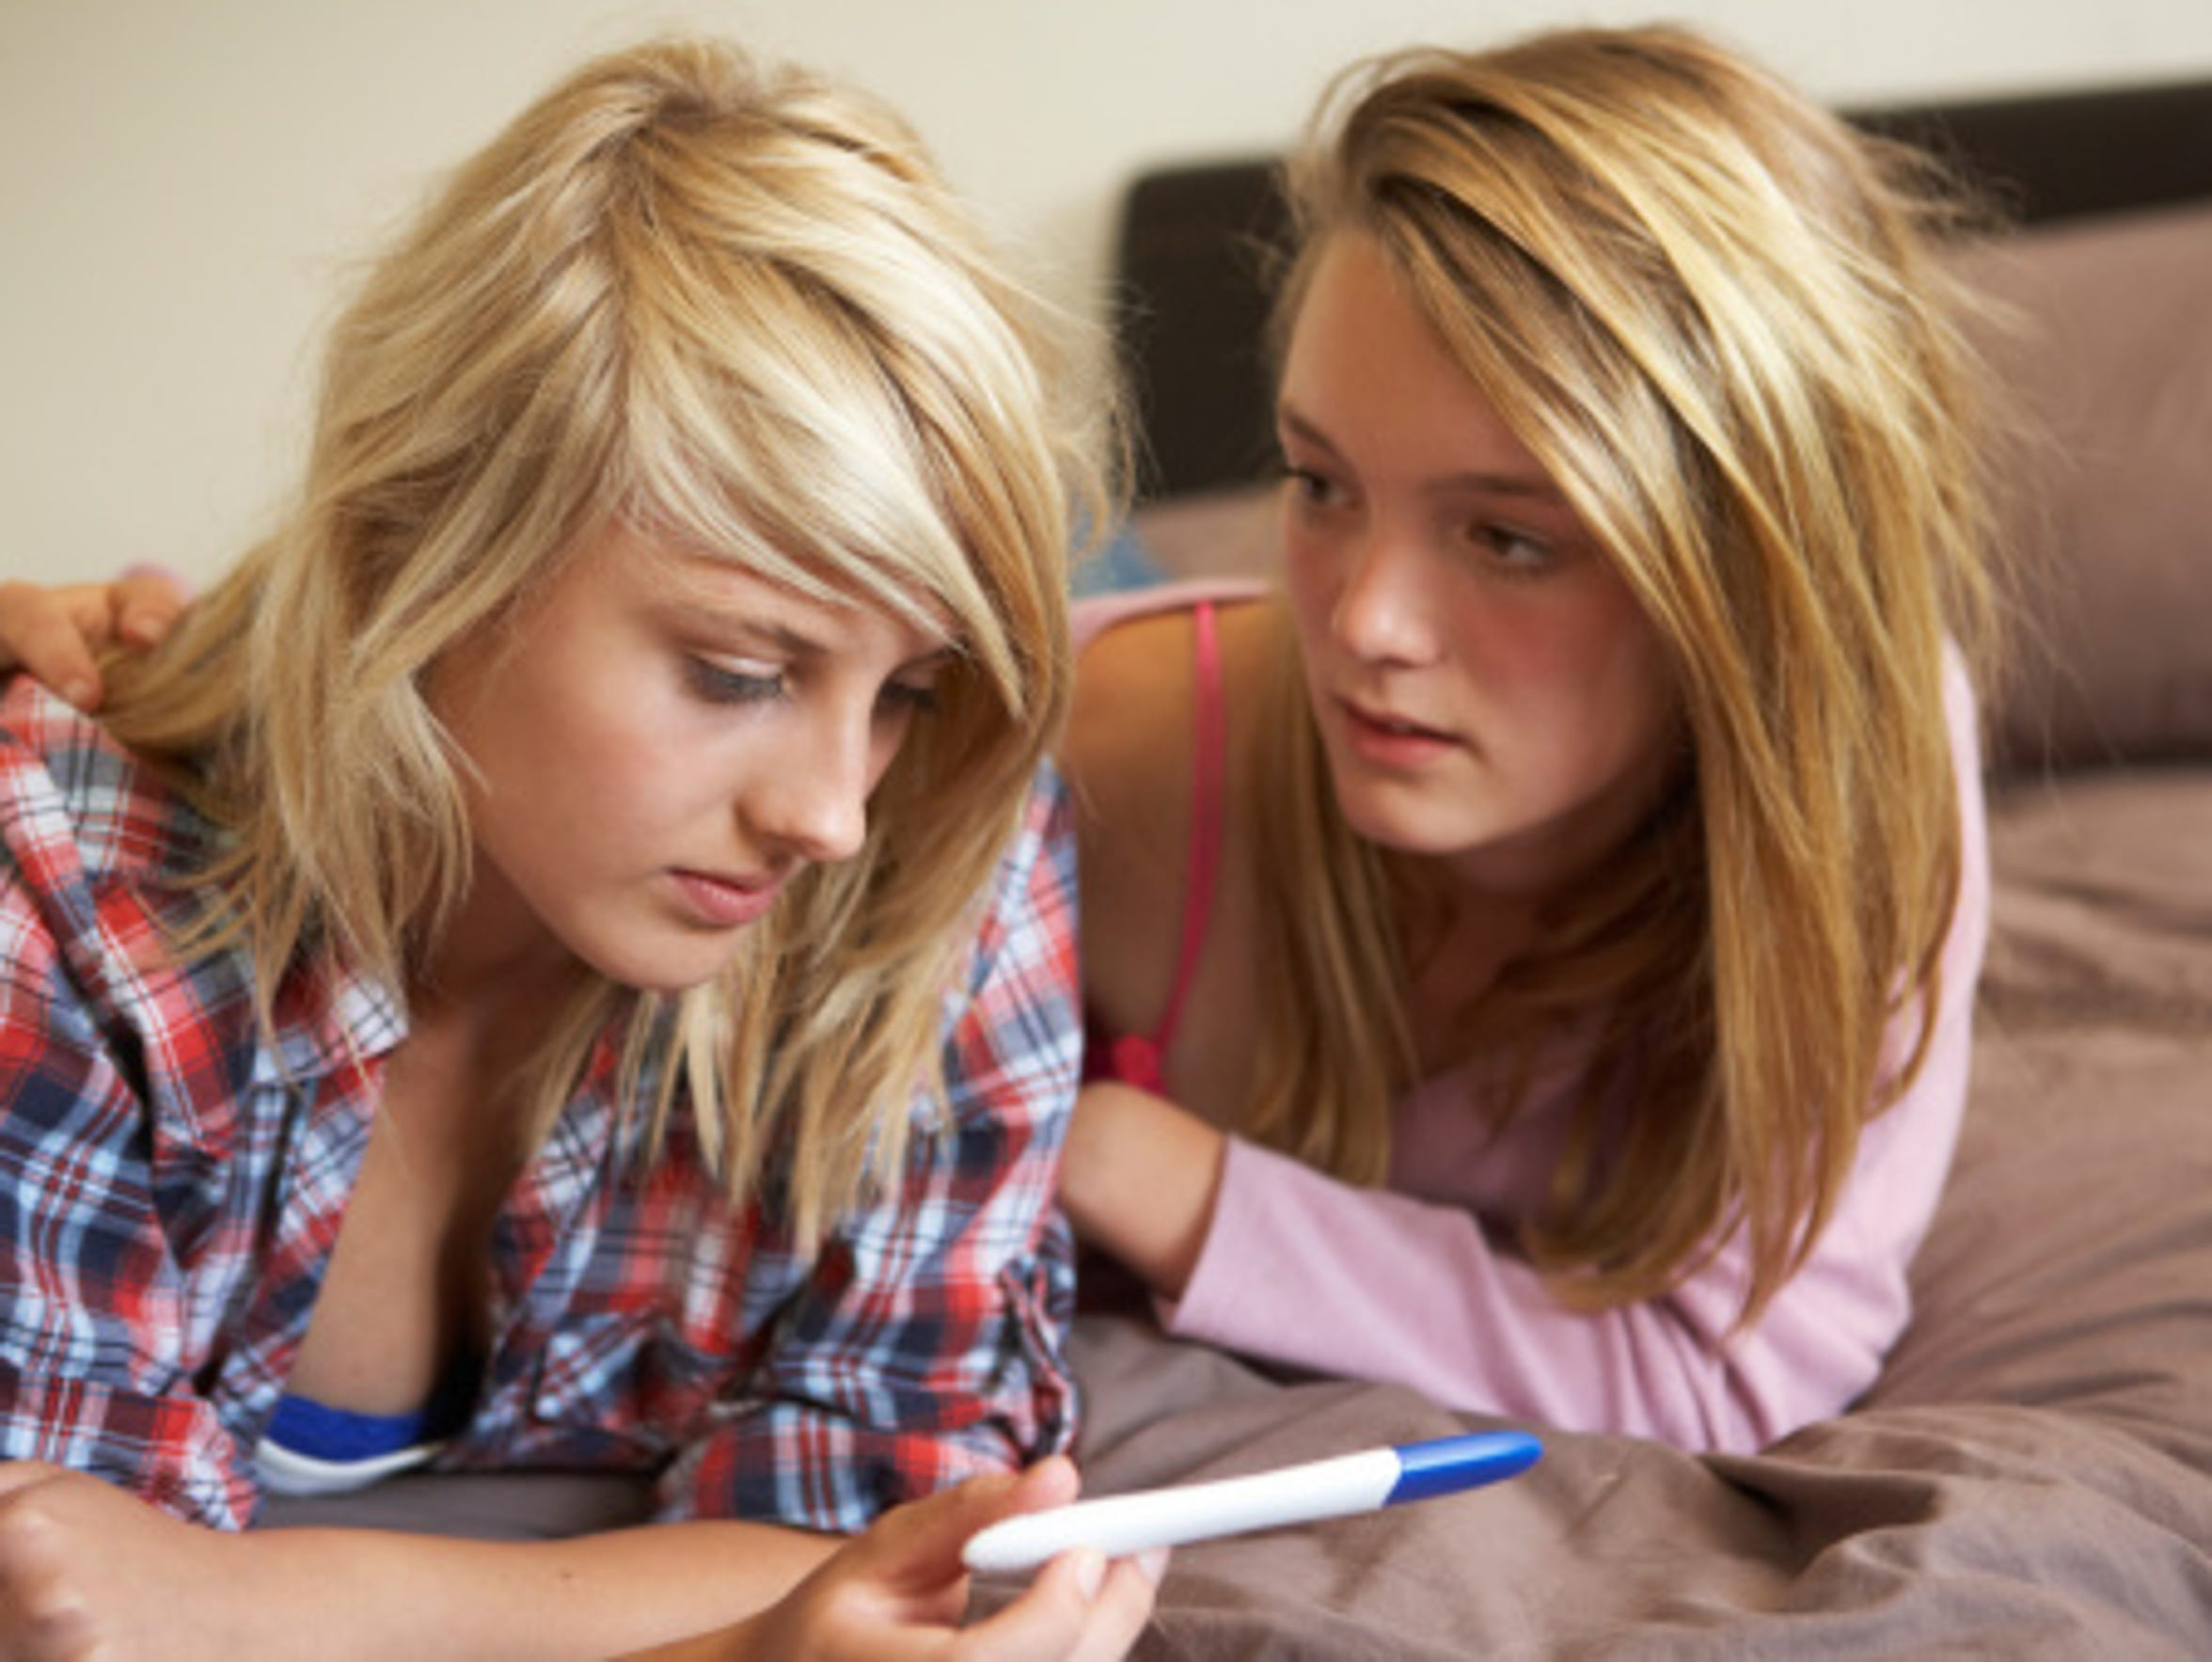 This stock photo shows two teen girls looking at a